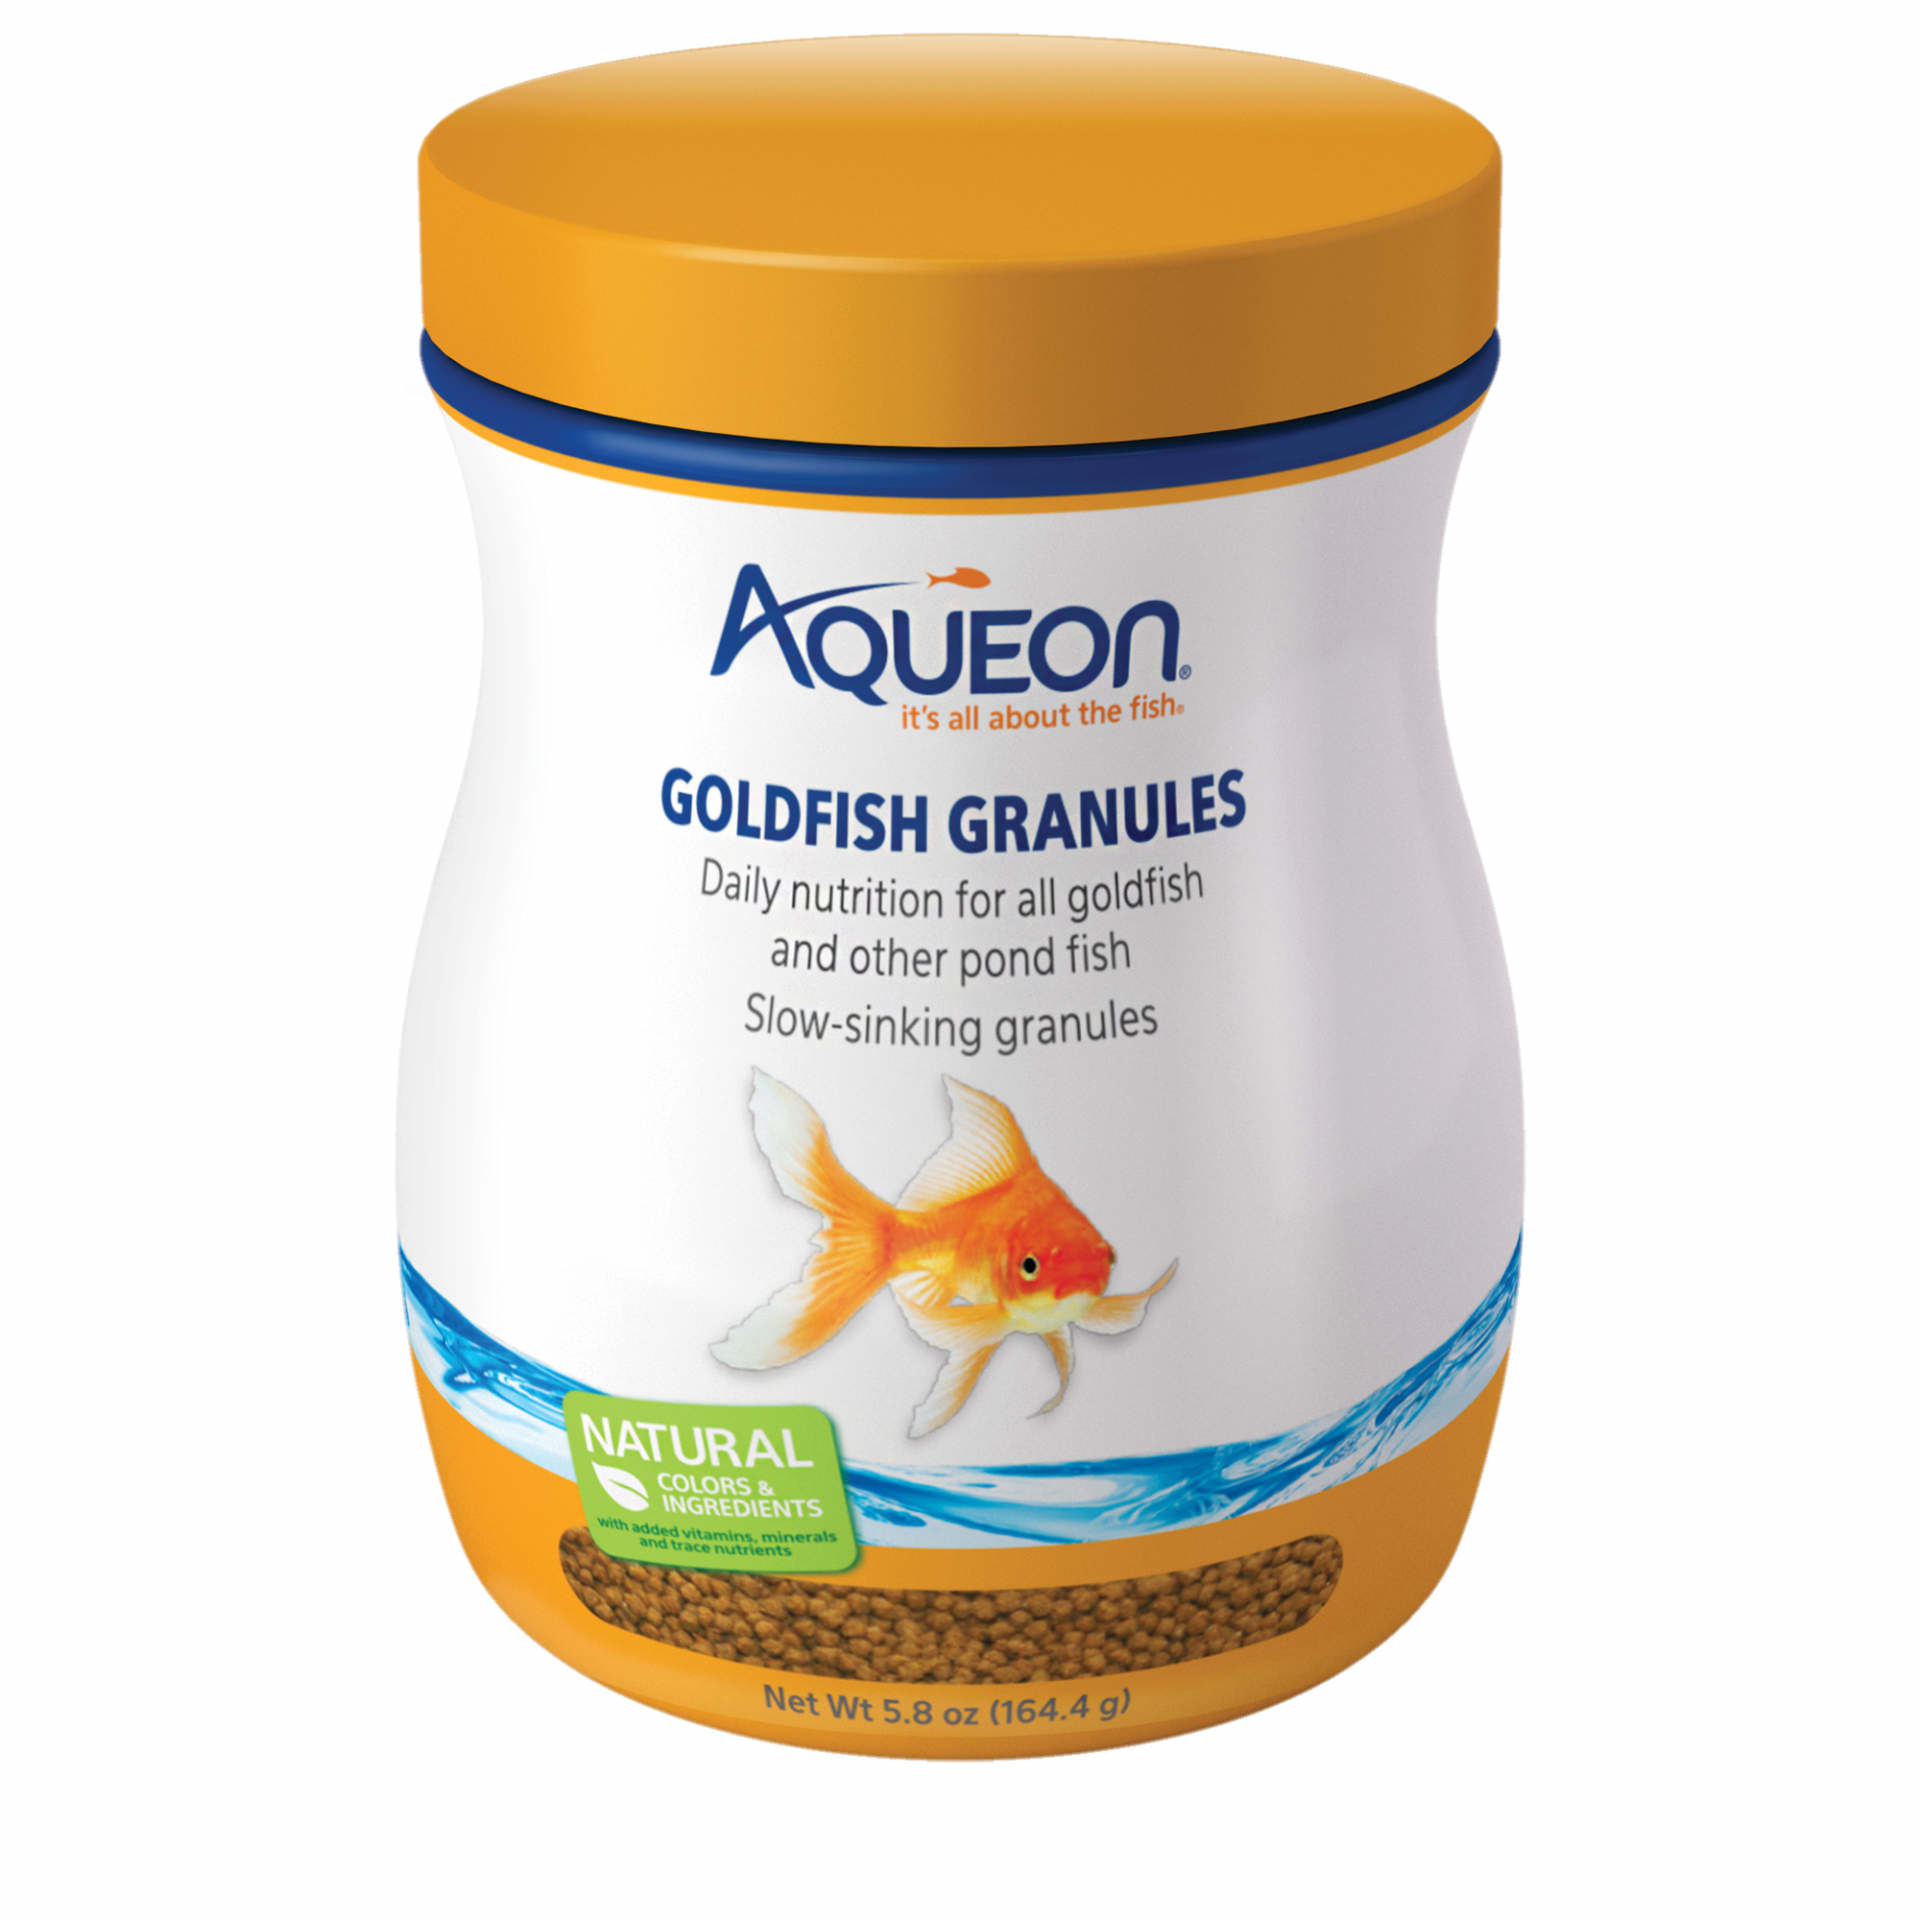 (2 pack) Aqueon Goldfish Granules Fish Food, 7.12oz